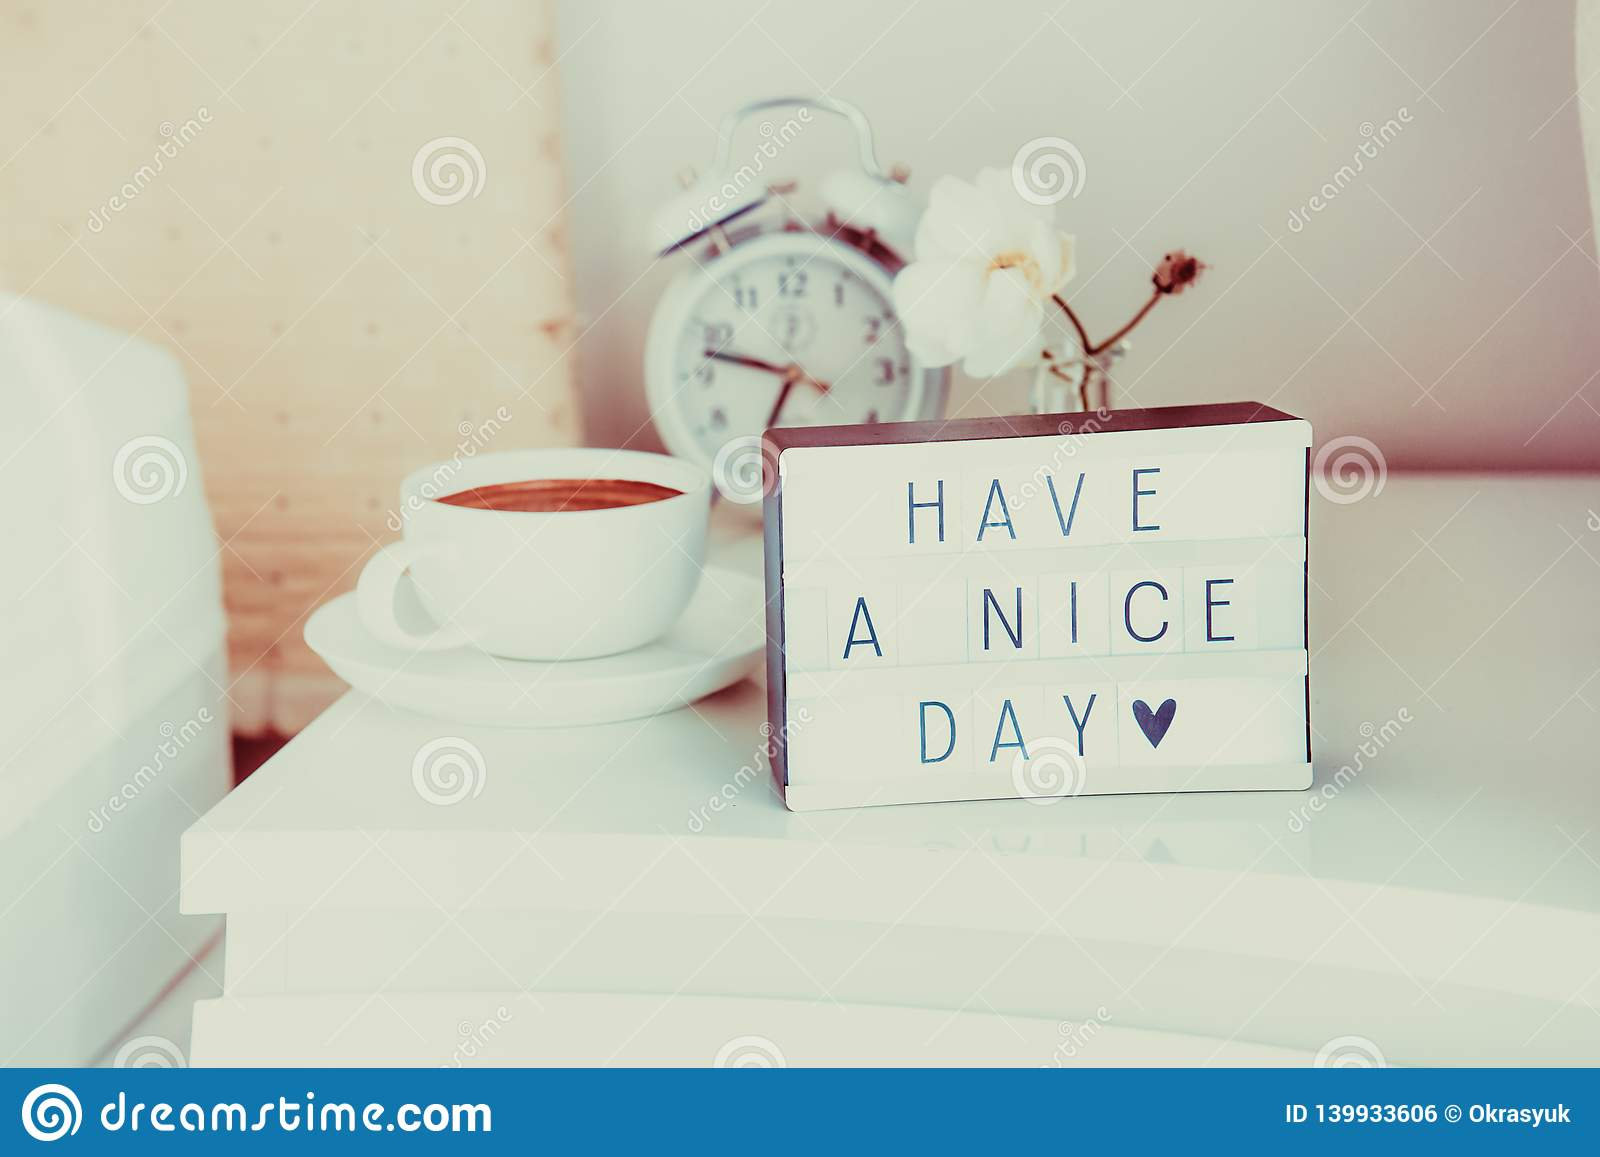 Have A Nice Day Message On Lighted Box Alarm Clock Cup Of Coffee